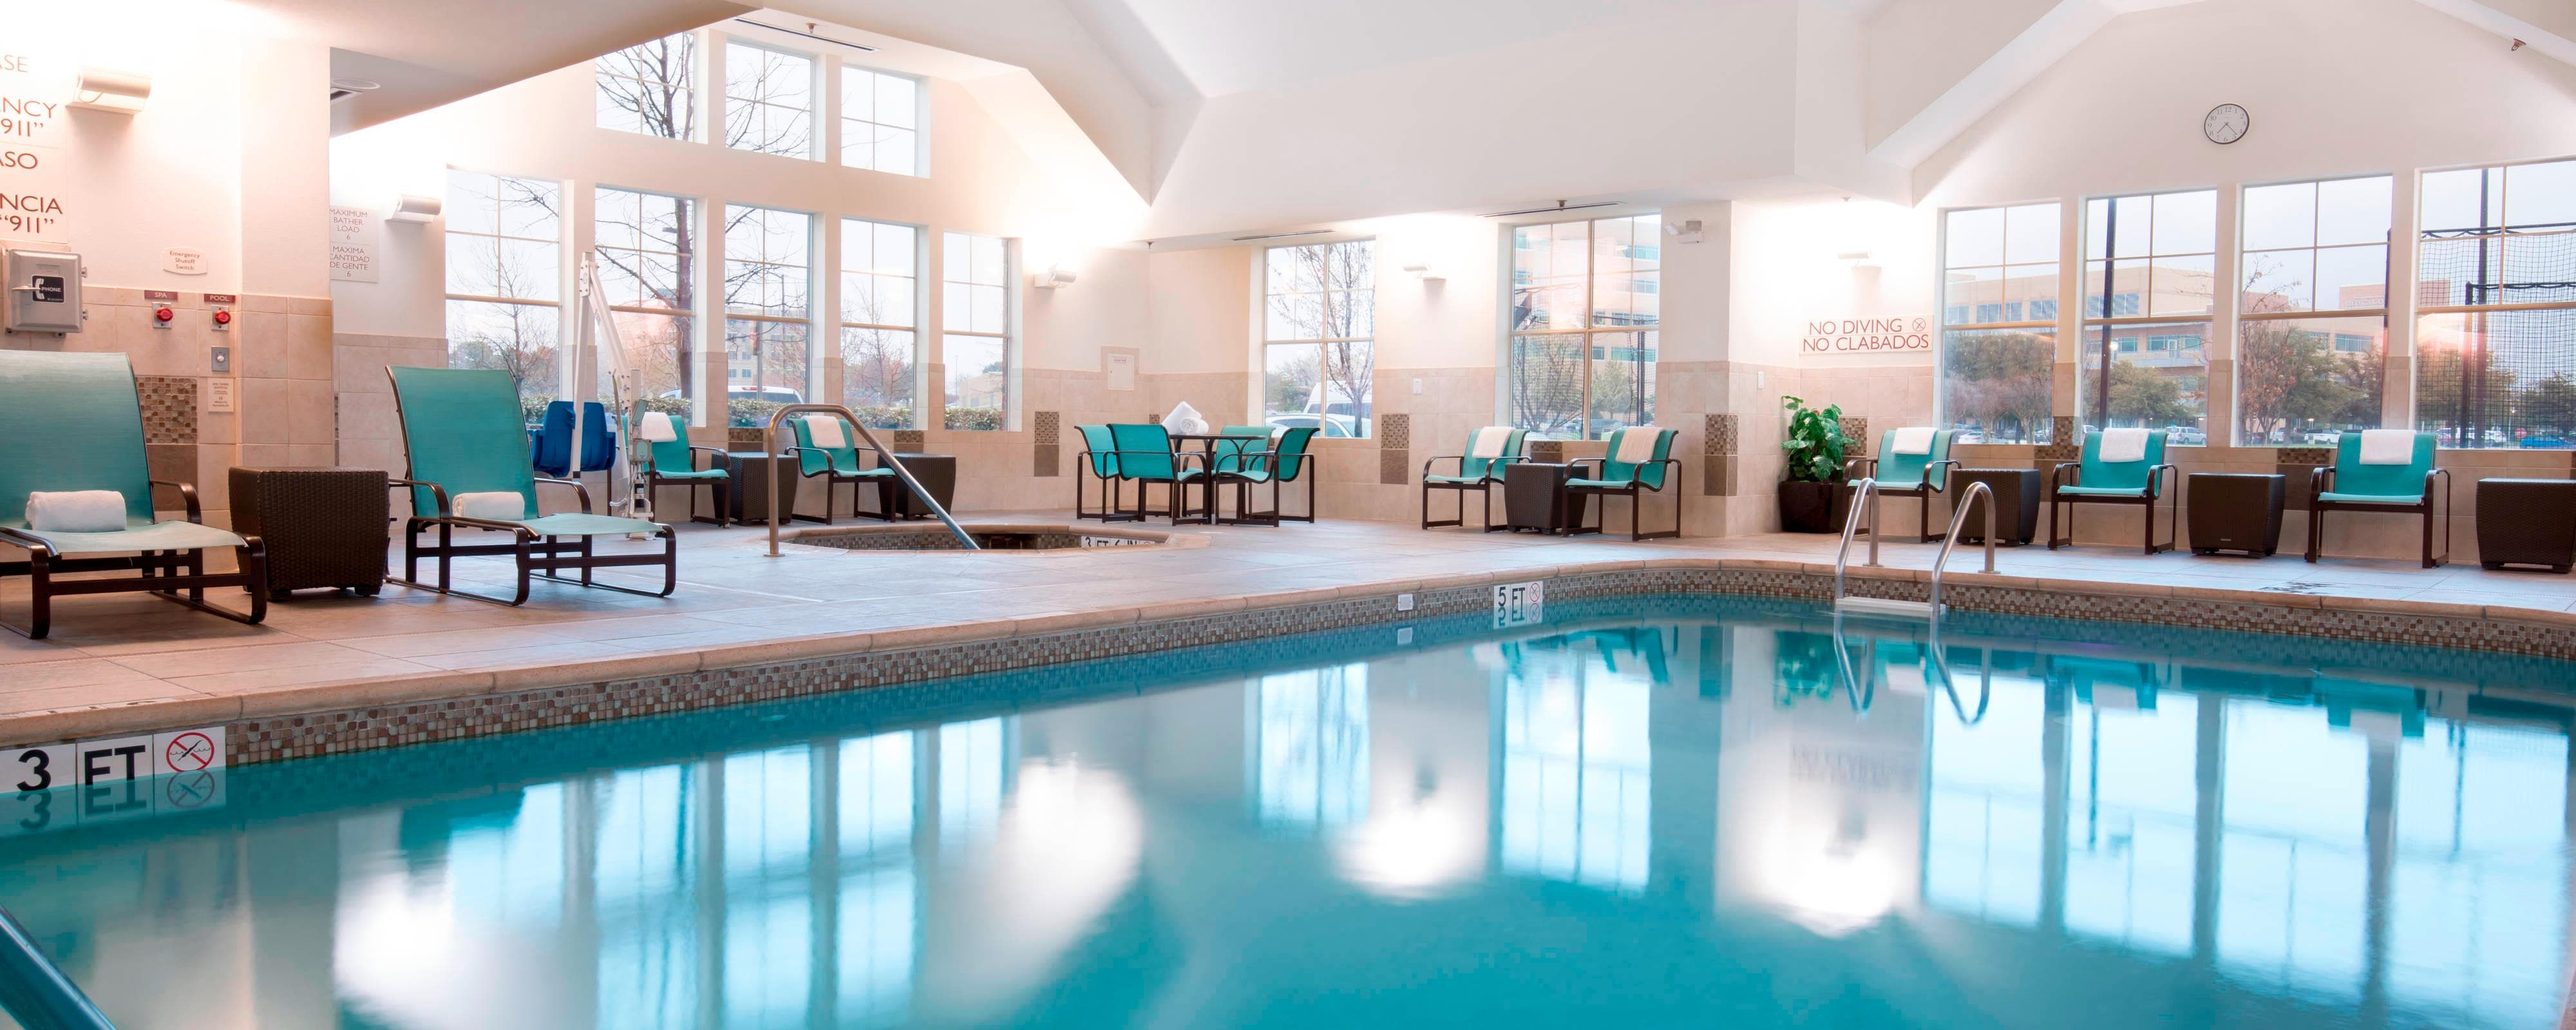 Arlington tx hotel with indoor pool residence inn dallas arlington south for Hotels in arlington tx with indoor swimming pool